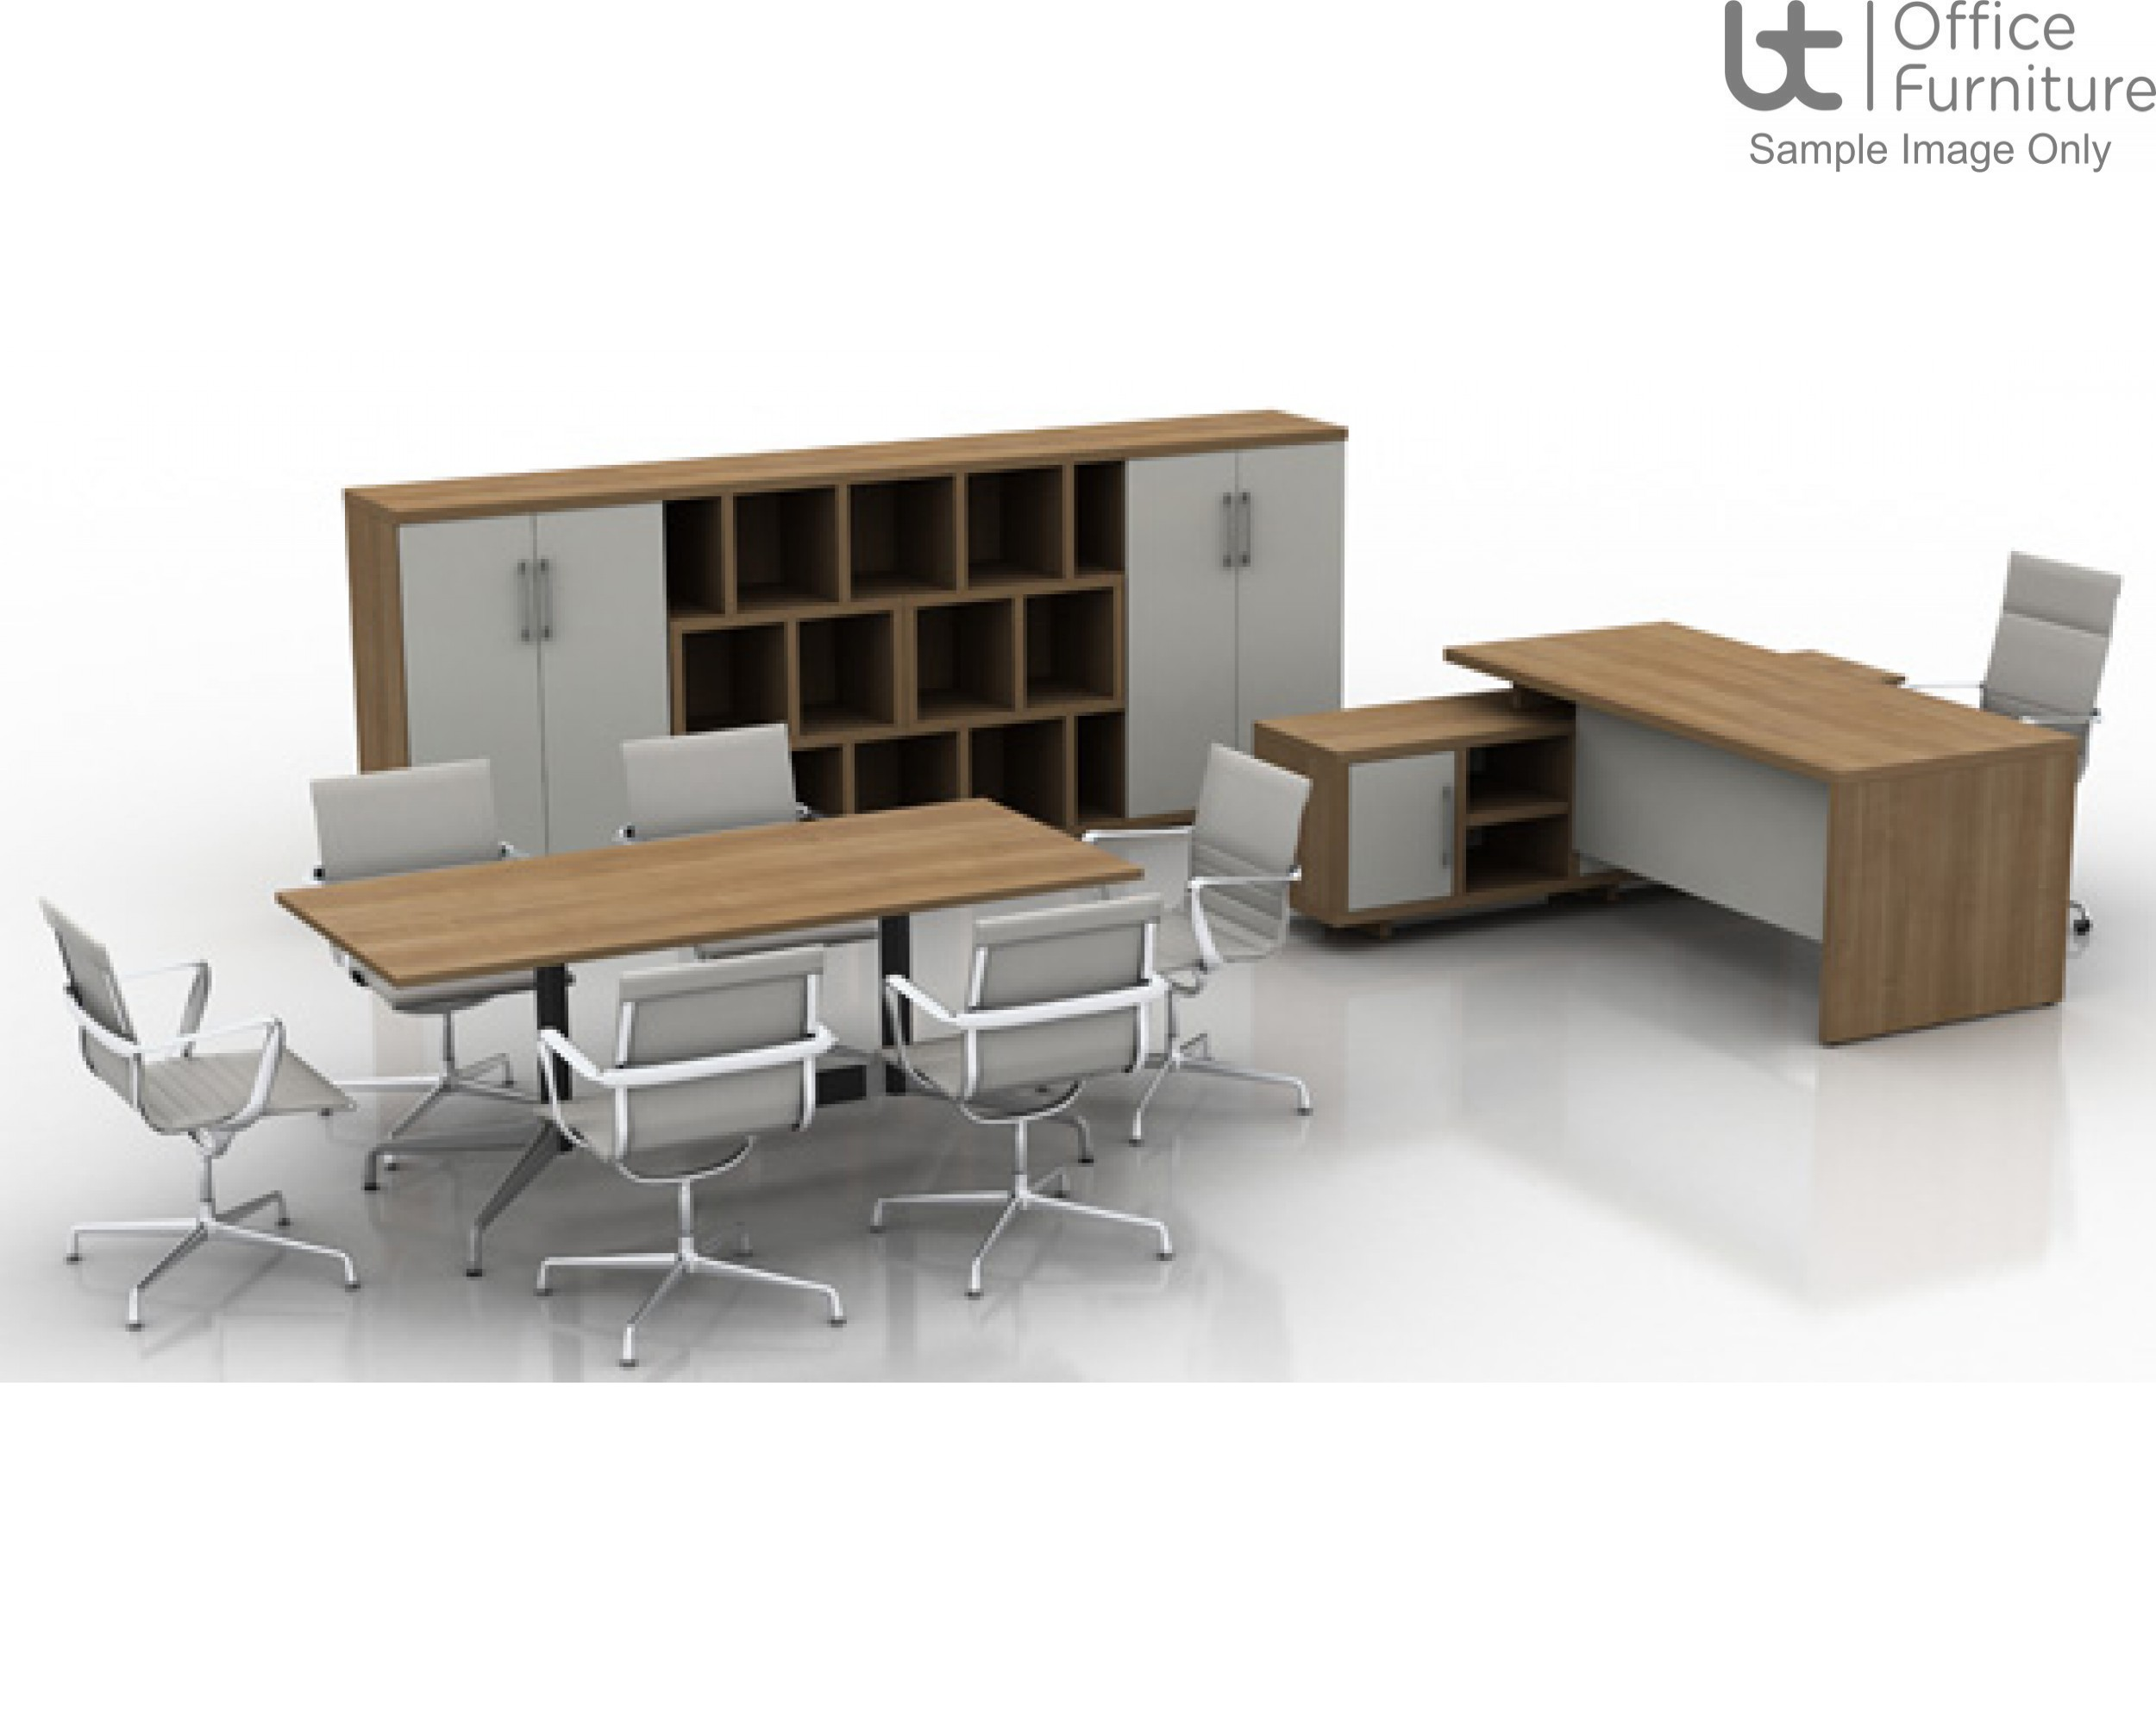 Rectangular Desk With Integrated Open Credenza And Full Length Modesty Panel